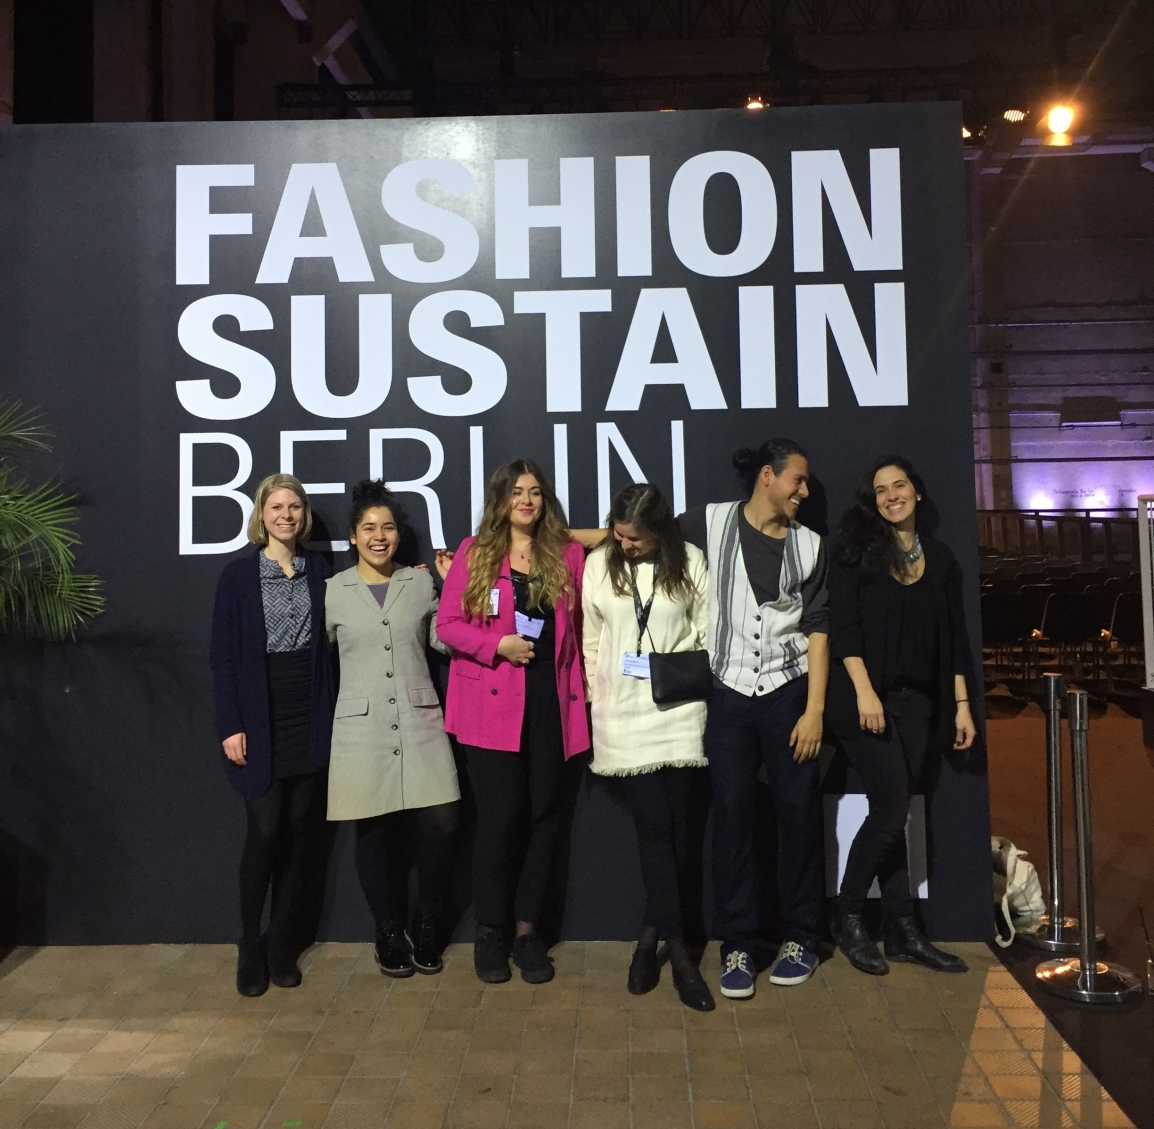 Berlin Fashion Week: Fashion Sustain 2018